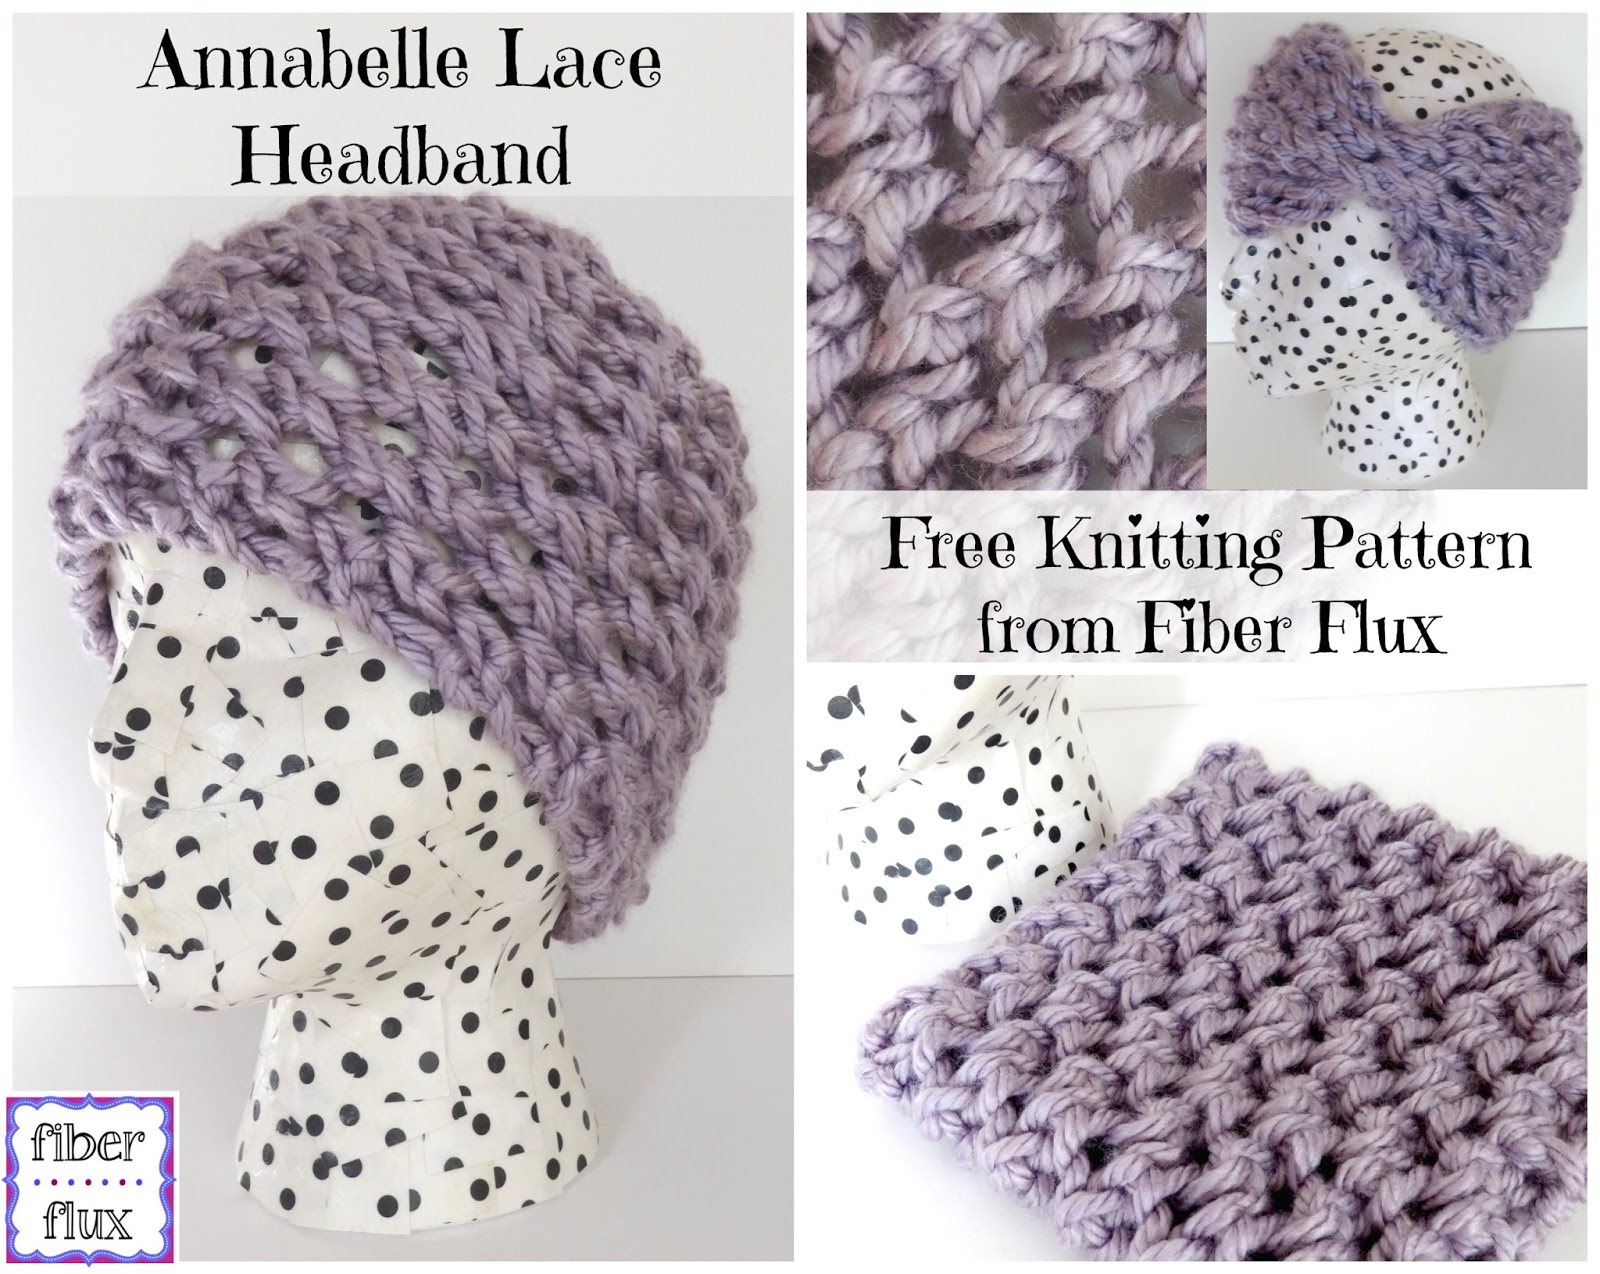 Fiber Flux: Free Knitting Pattern: Annabelle Lace Headband!